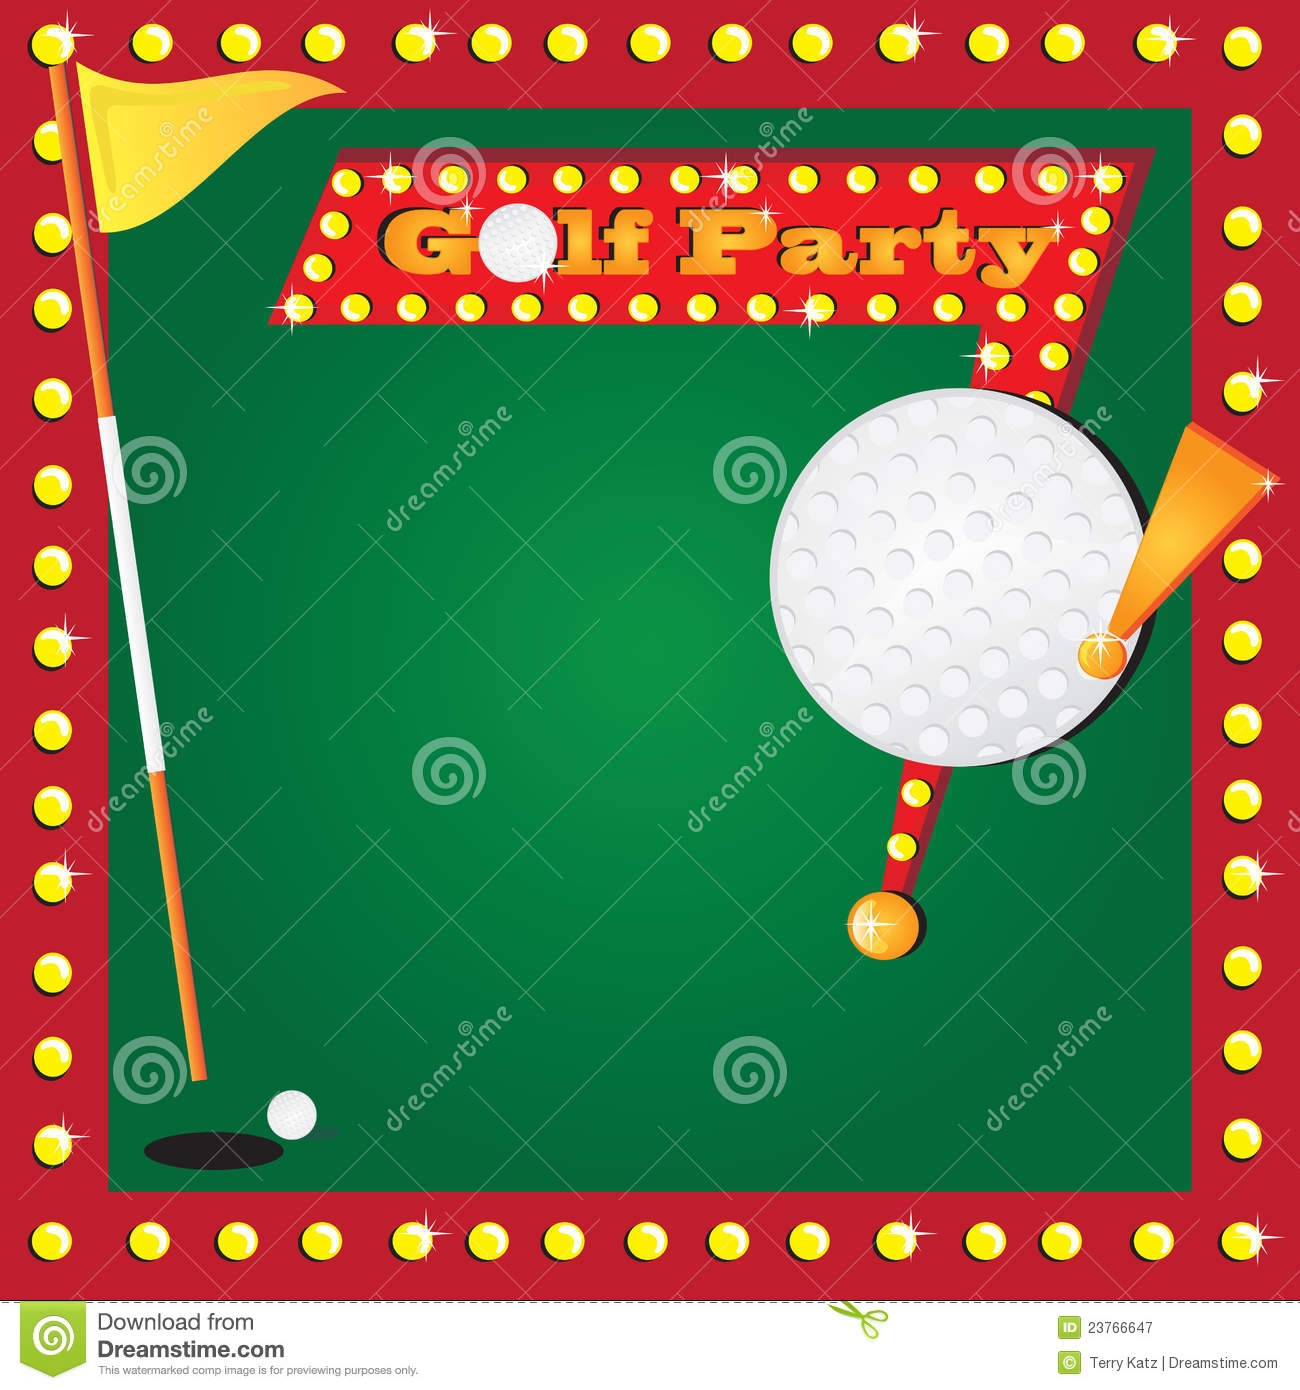 Retro Miniature Golf Party Invitation Vector Image 23766647 – Golf Party Invites